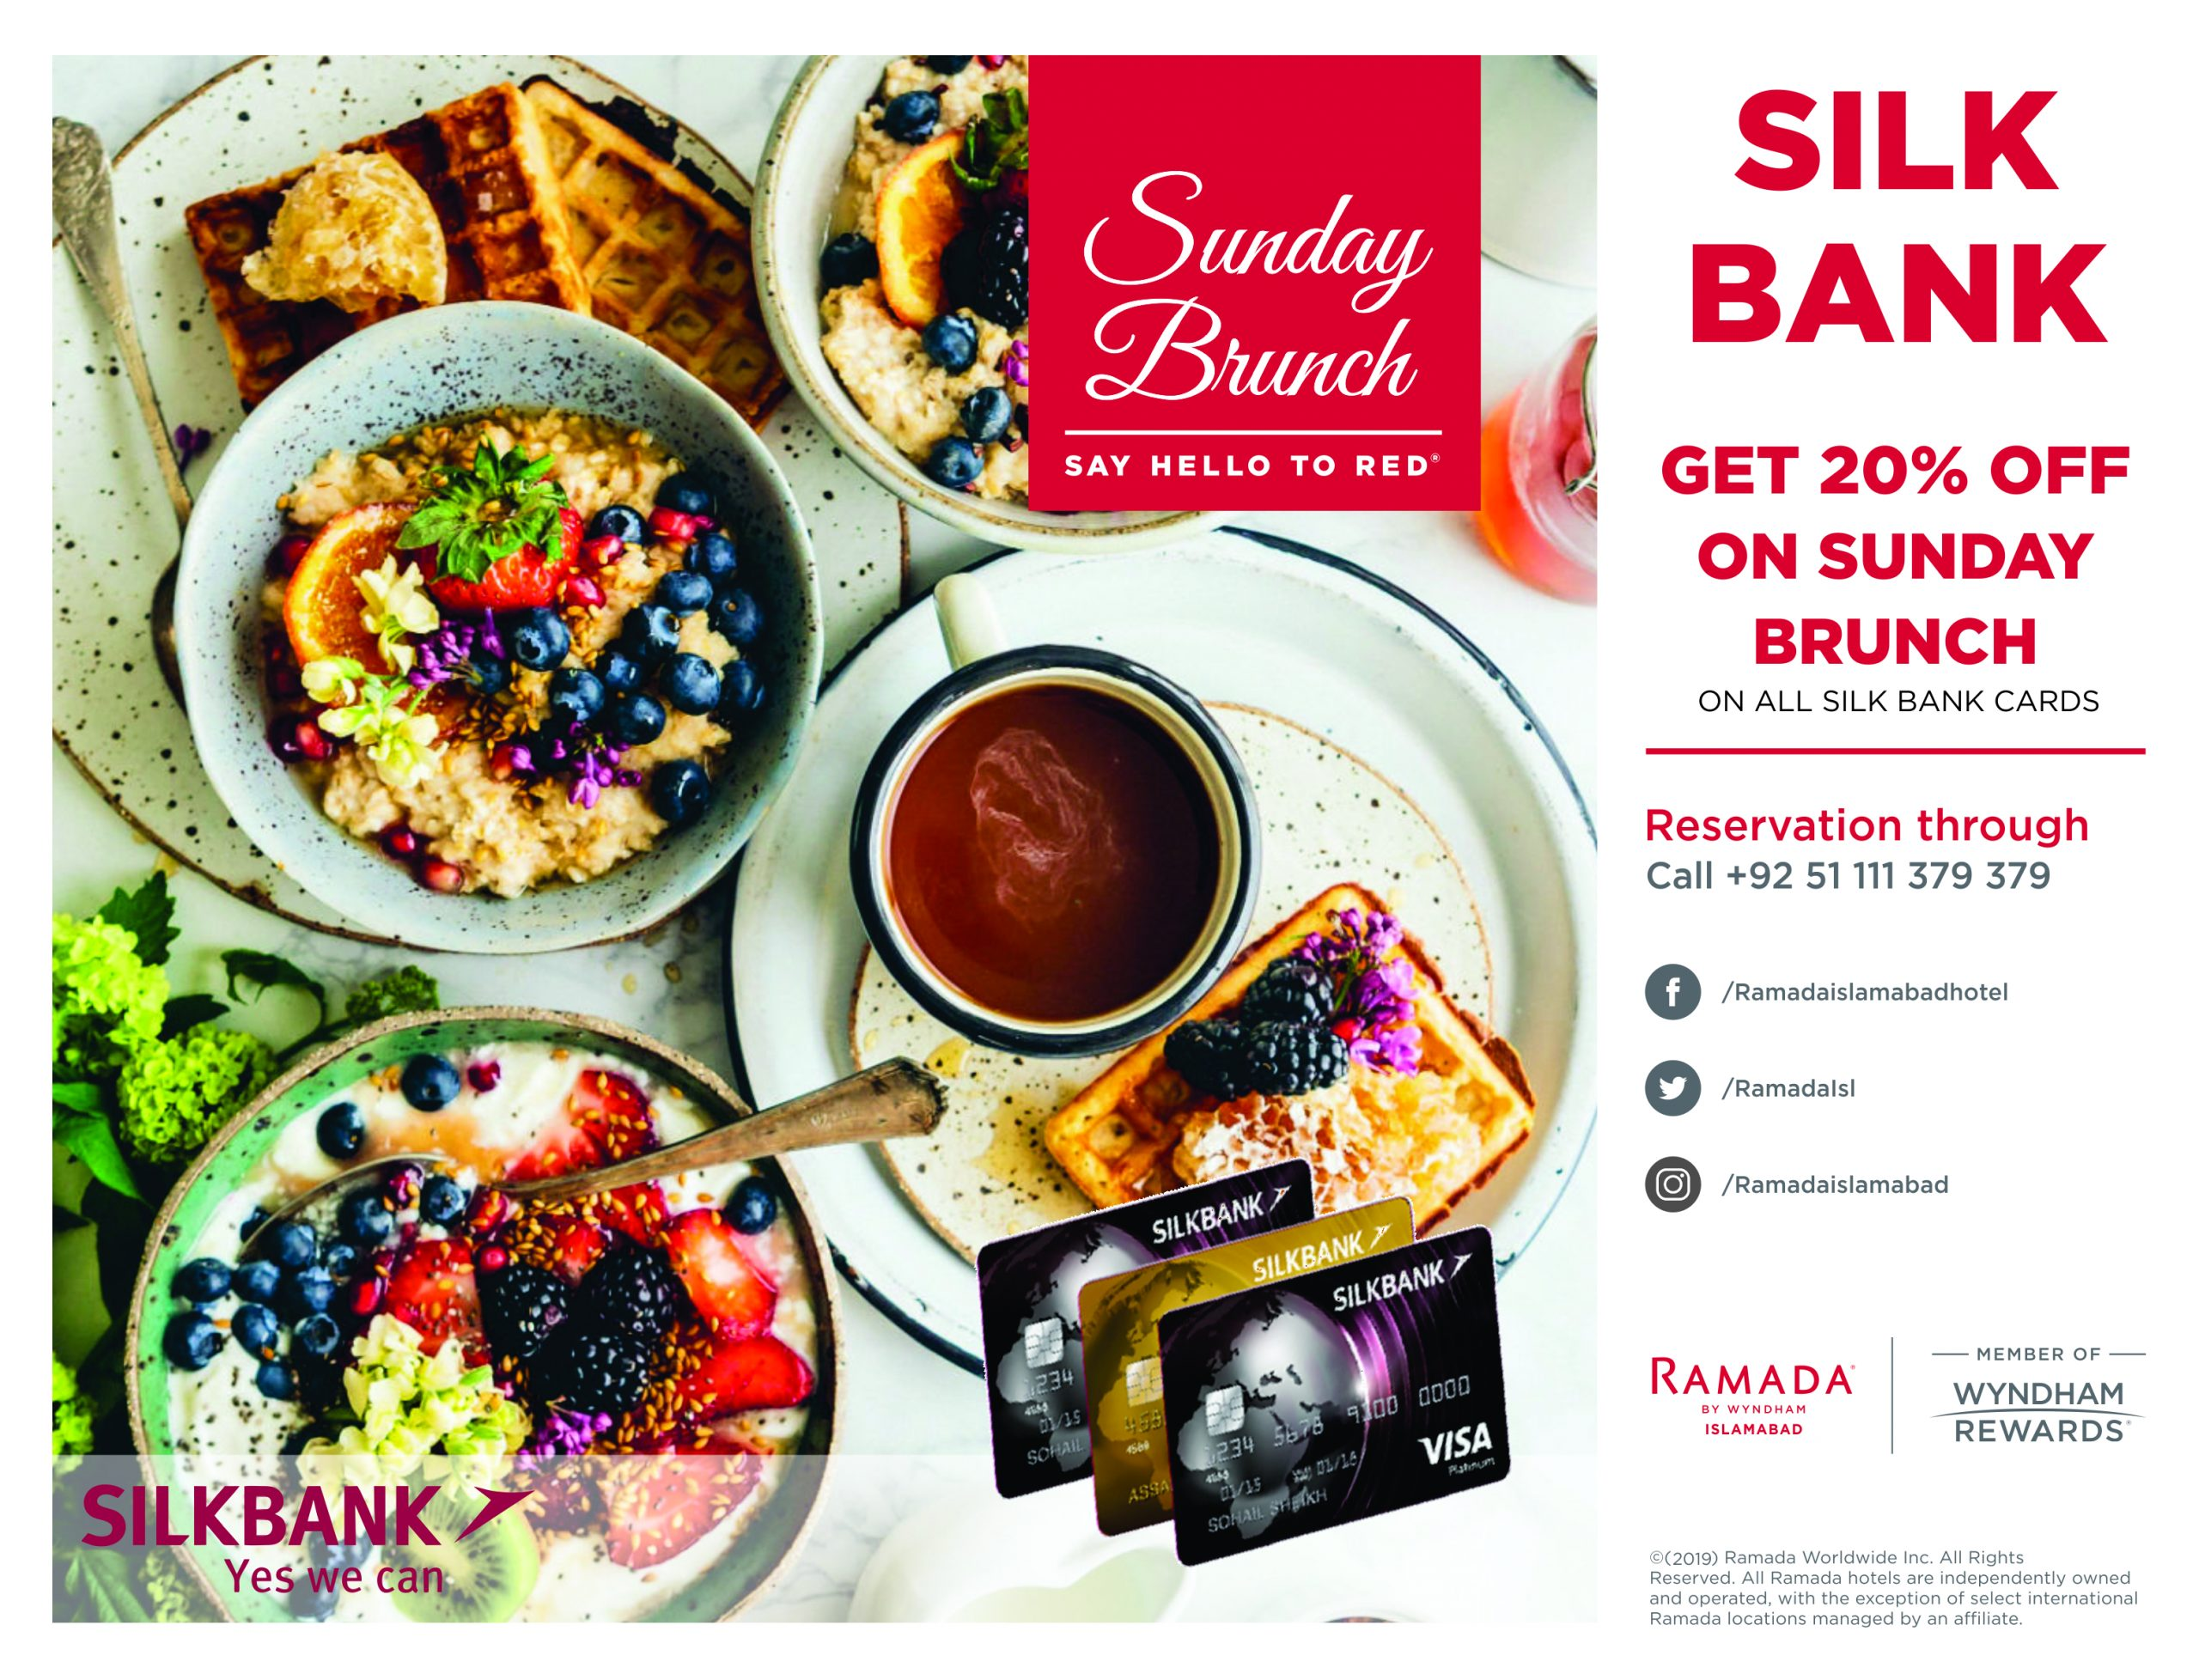 Promotion: Only For The Loyal Customer Of Silk Bank